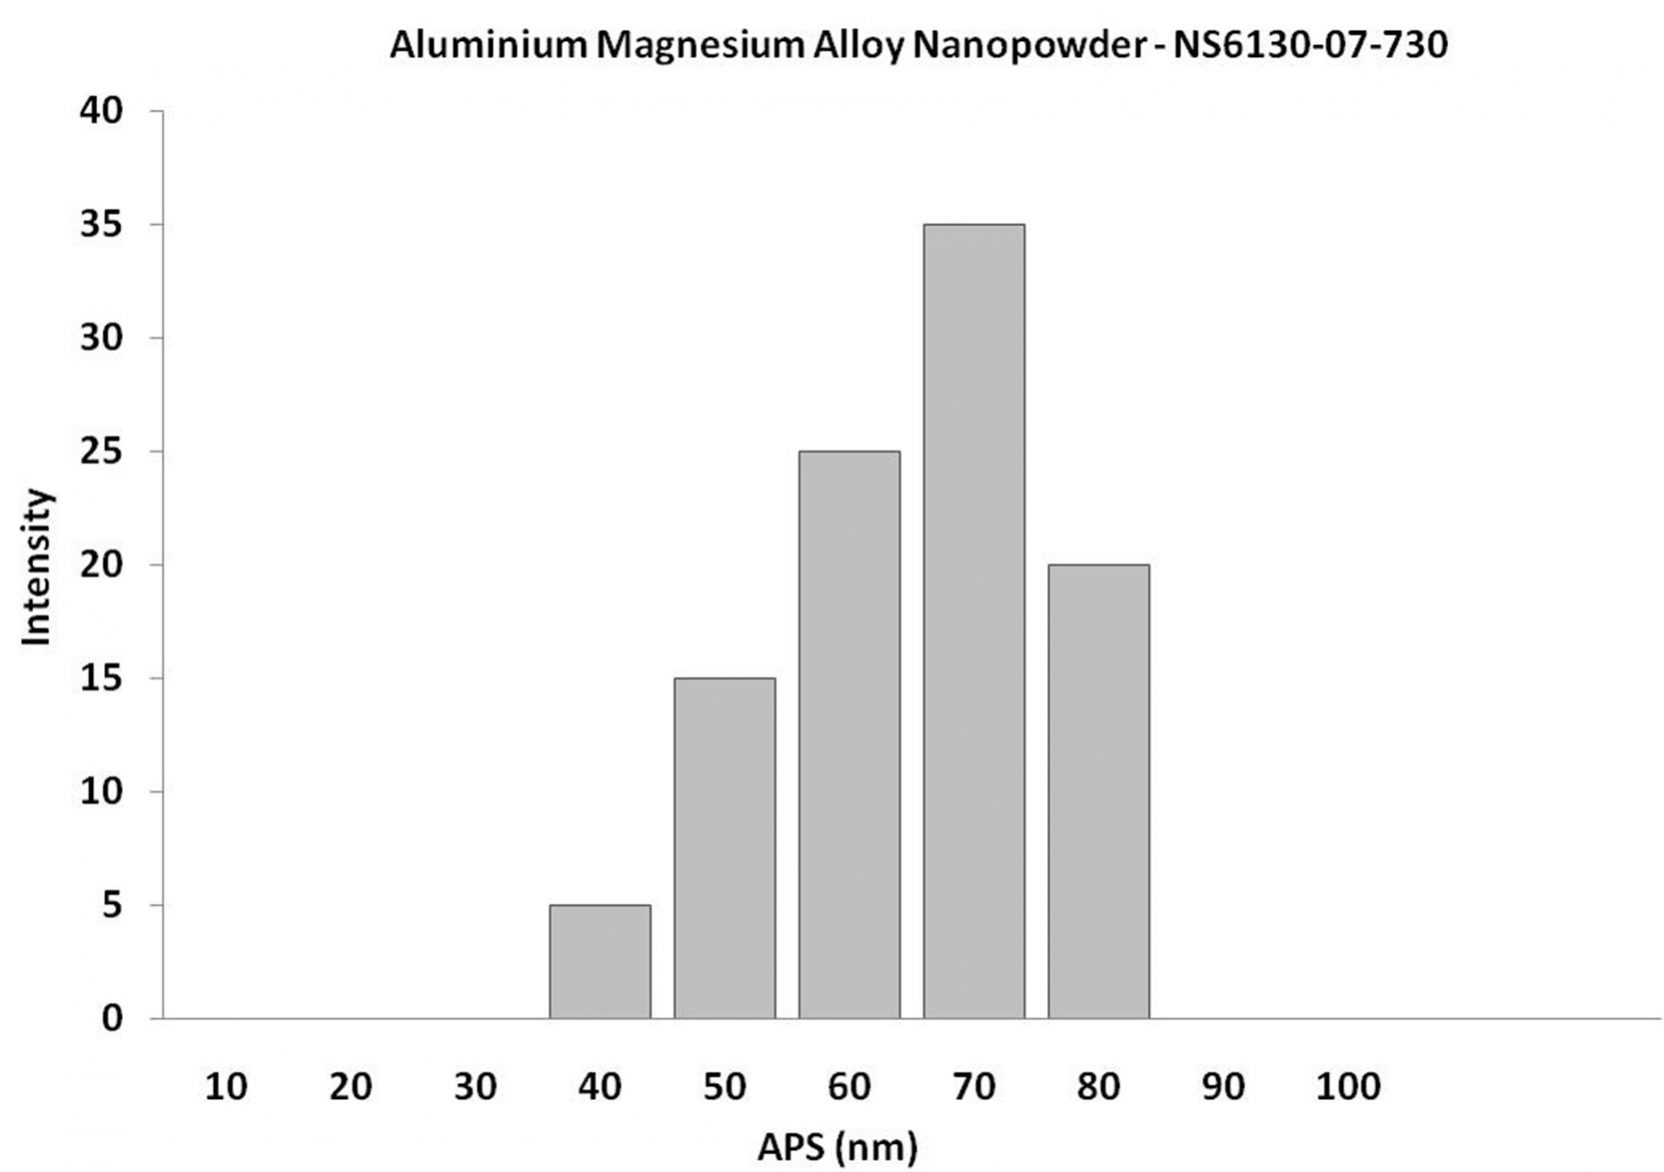 Al:Mg Alloy Nanoparticles - Size Analysis